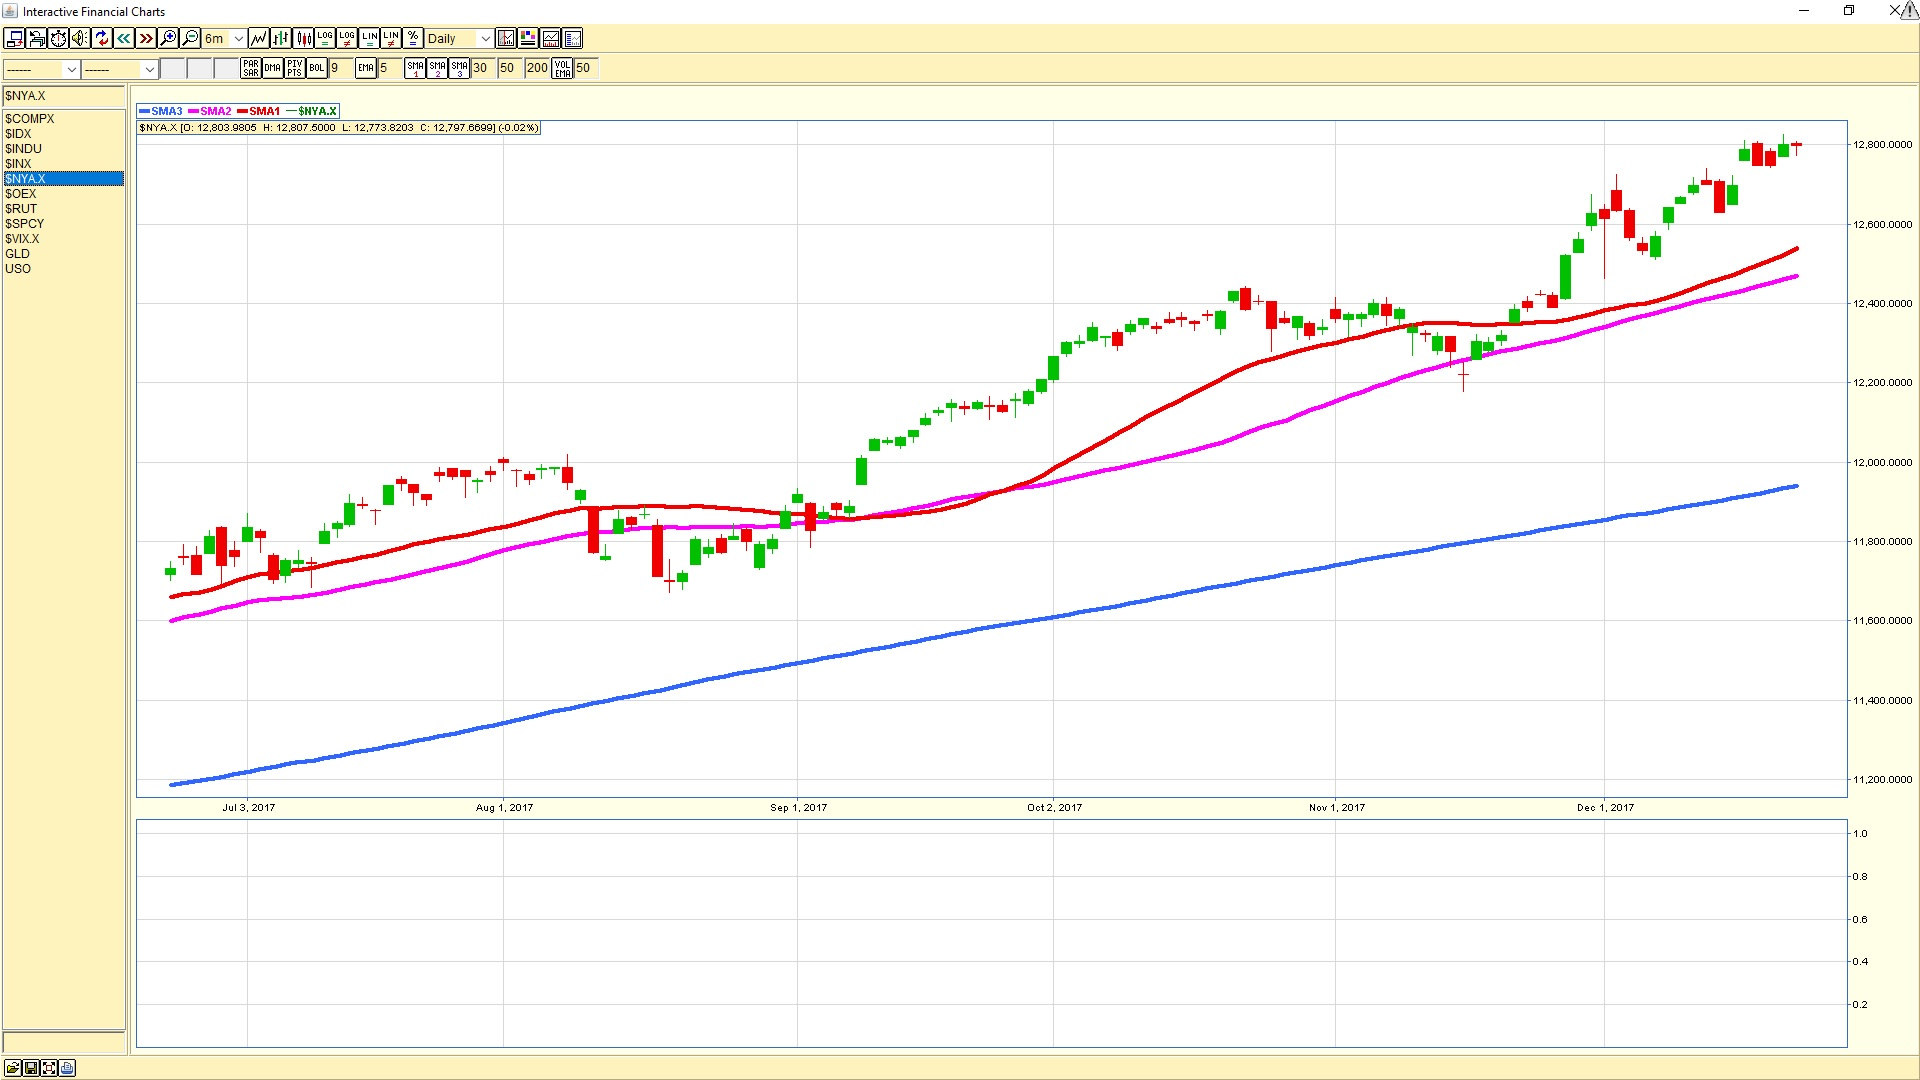 New York Stock Exchange Daily chart